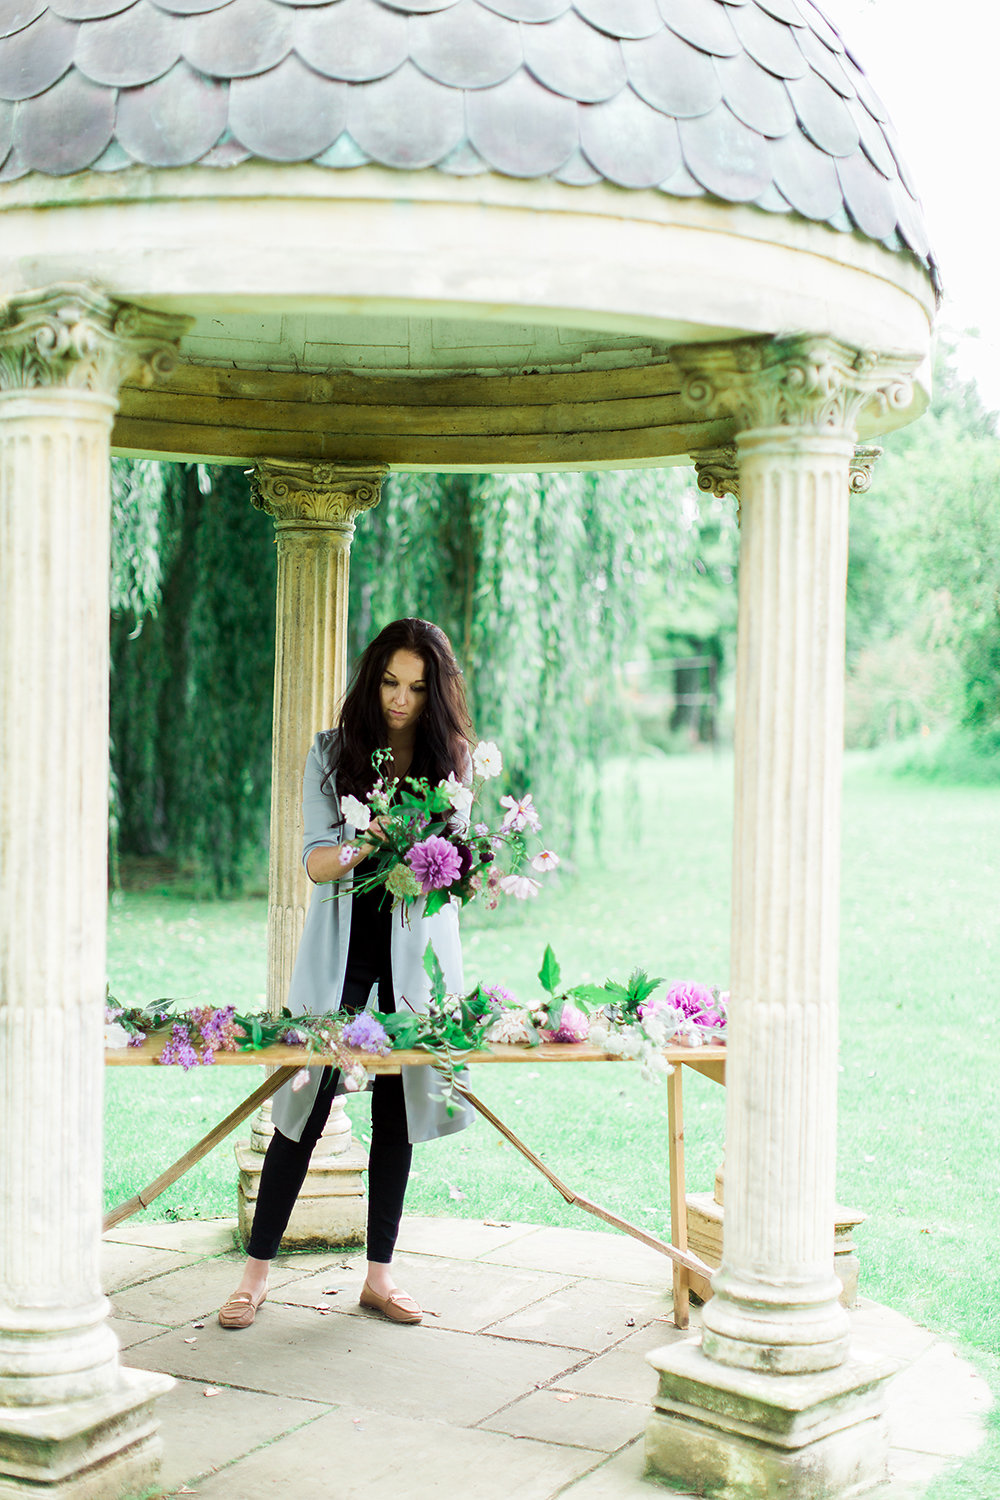 Alexandra Rose in the Wedding Temple at the Old Swan and Minster Mill creating with Swan Cottage British Flowers